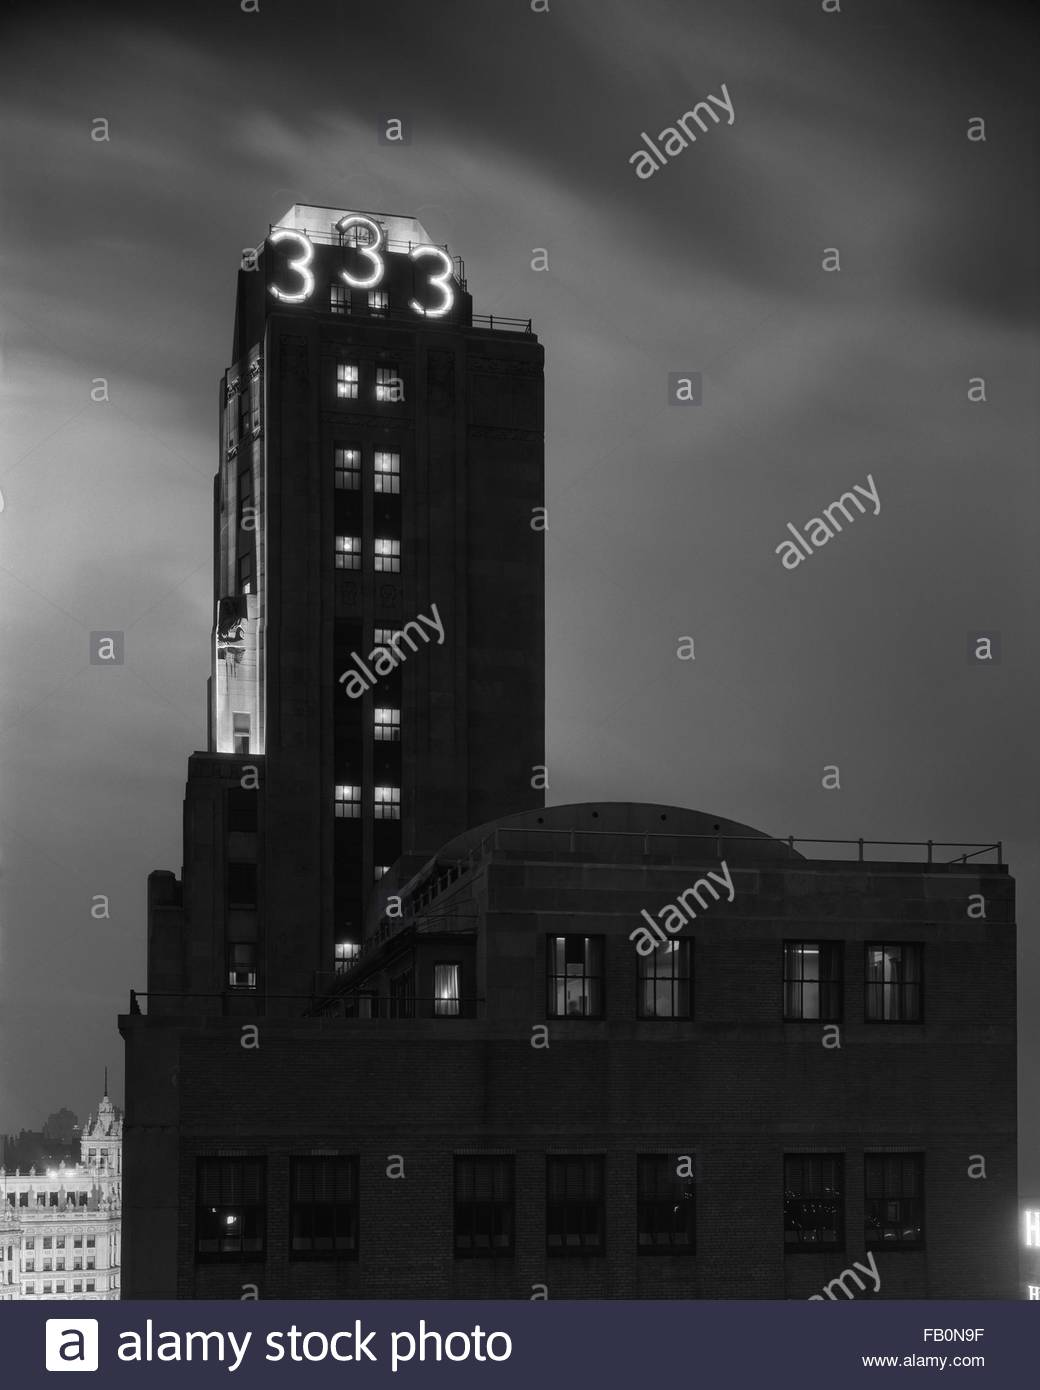 333 North Michigan Avenue in Chicago (Ill.), 1932 June 6. Exterior view of the south facade of the tower portion - Stock Image